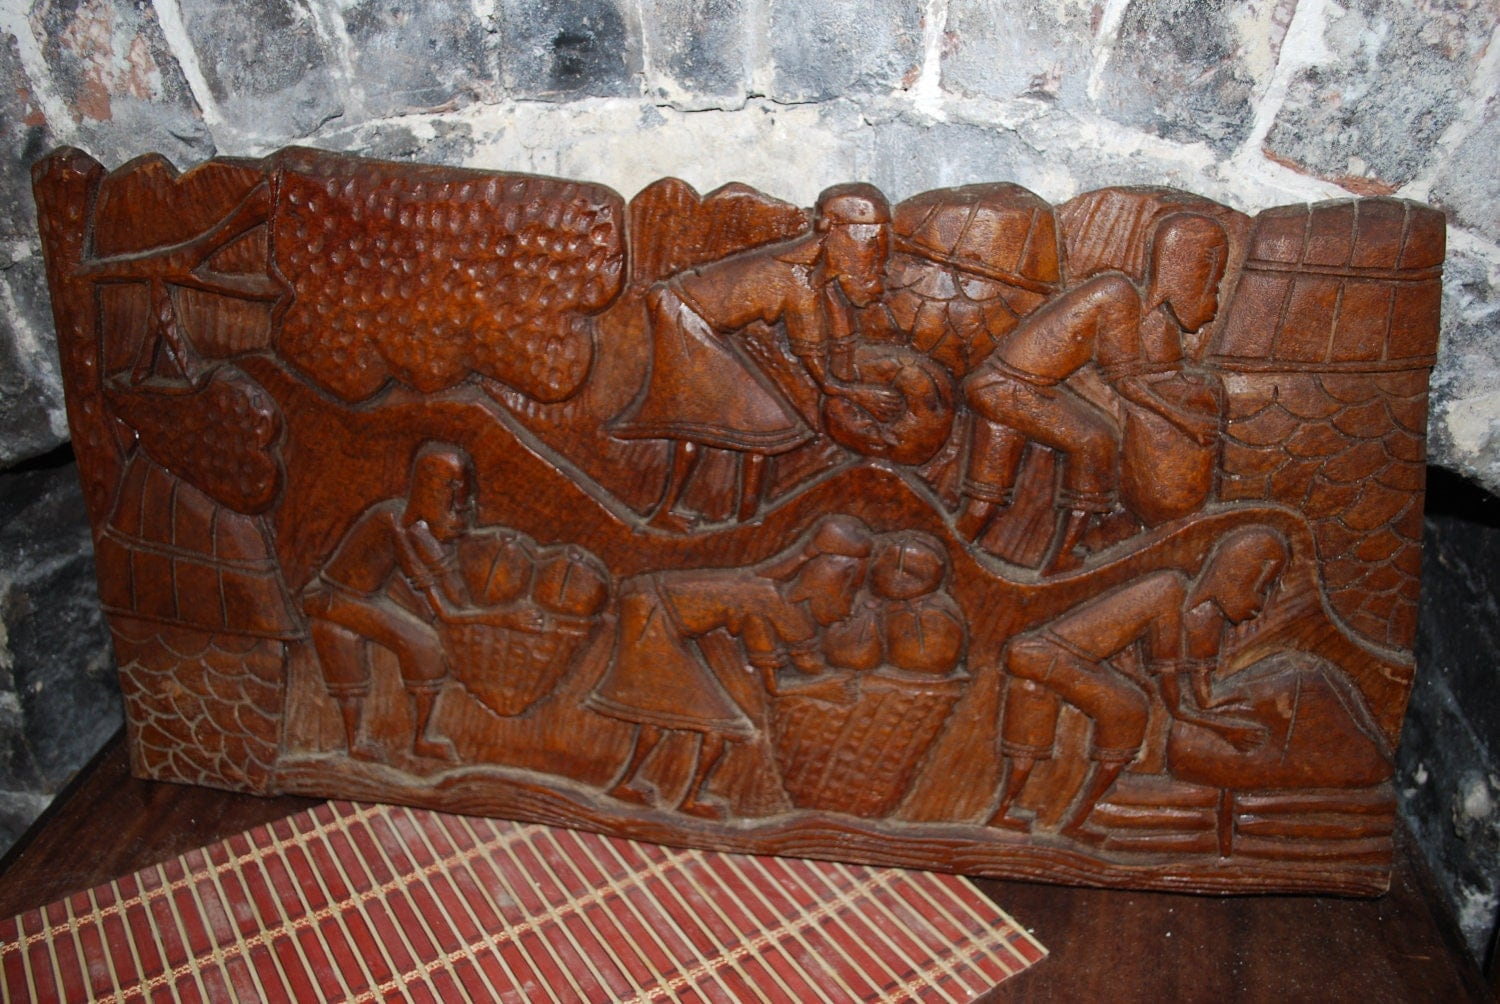 Vintage Wood Carving Haiti By 11eleven11eleven11 On Etsy